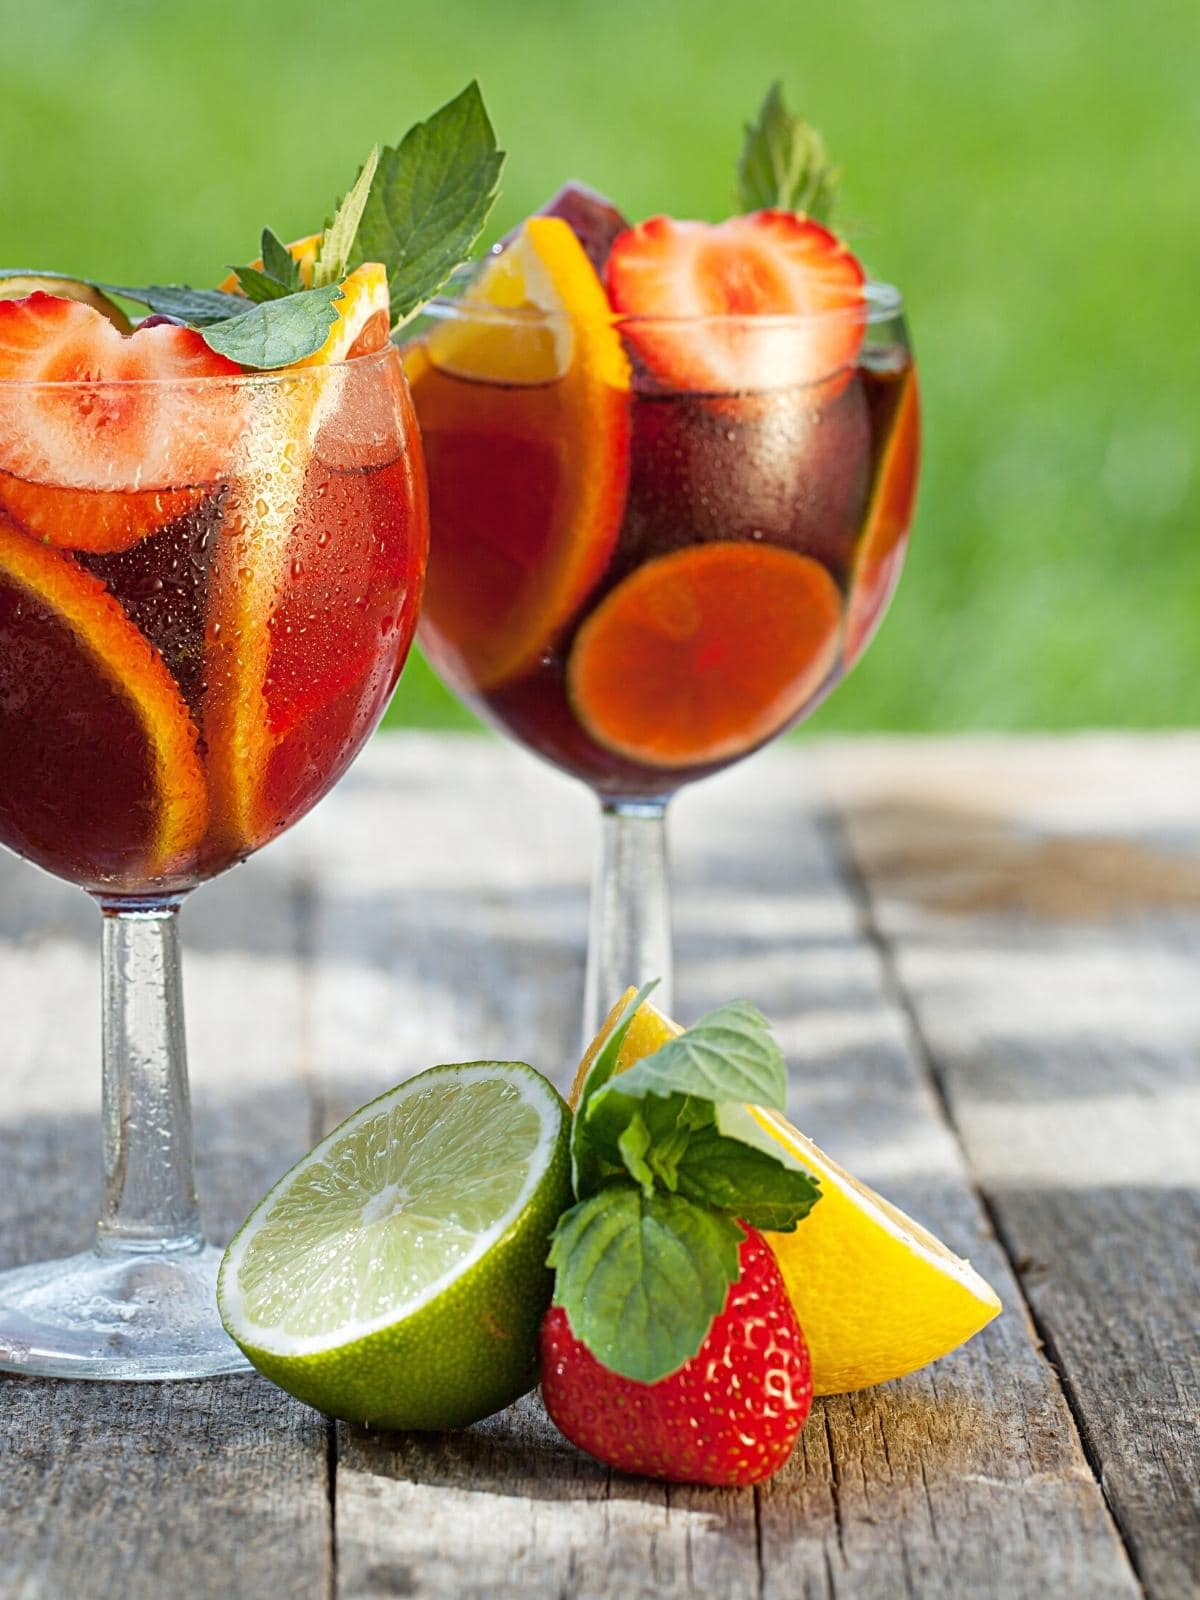 two wine glasses filled with strawberry orange sangria.